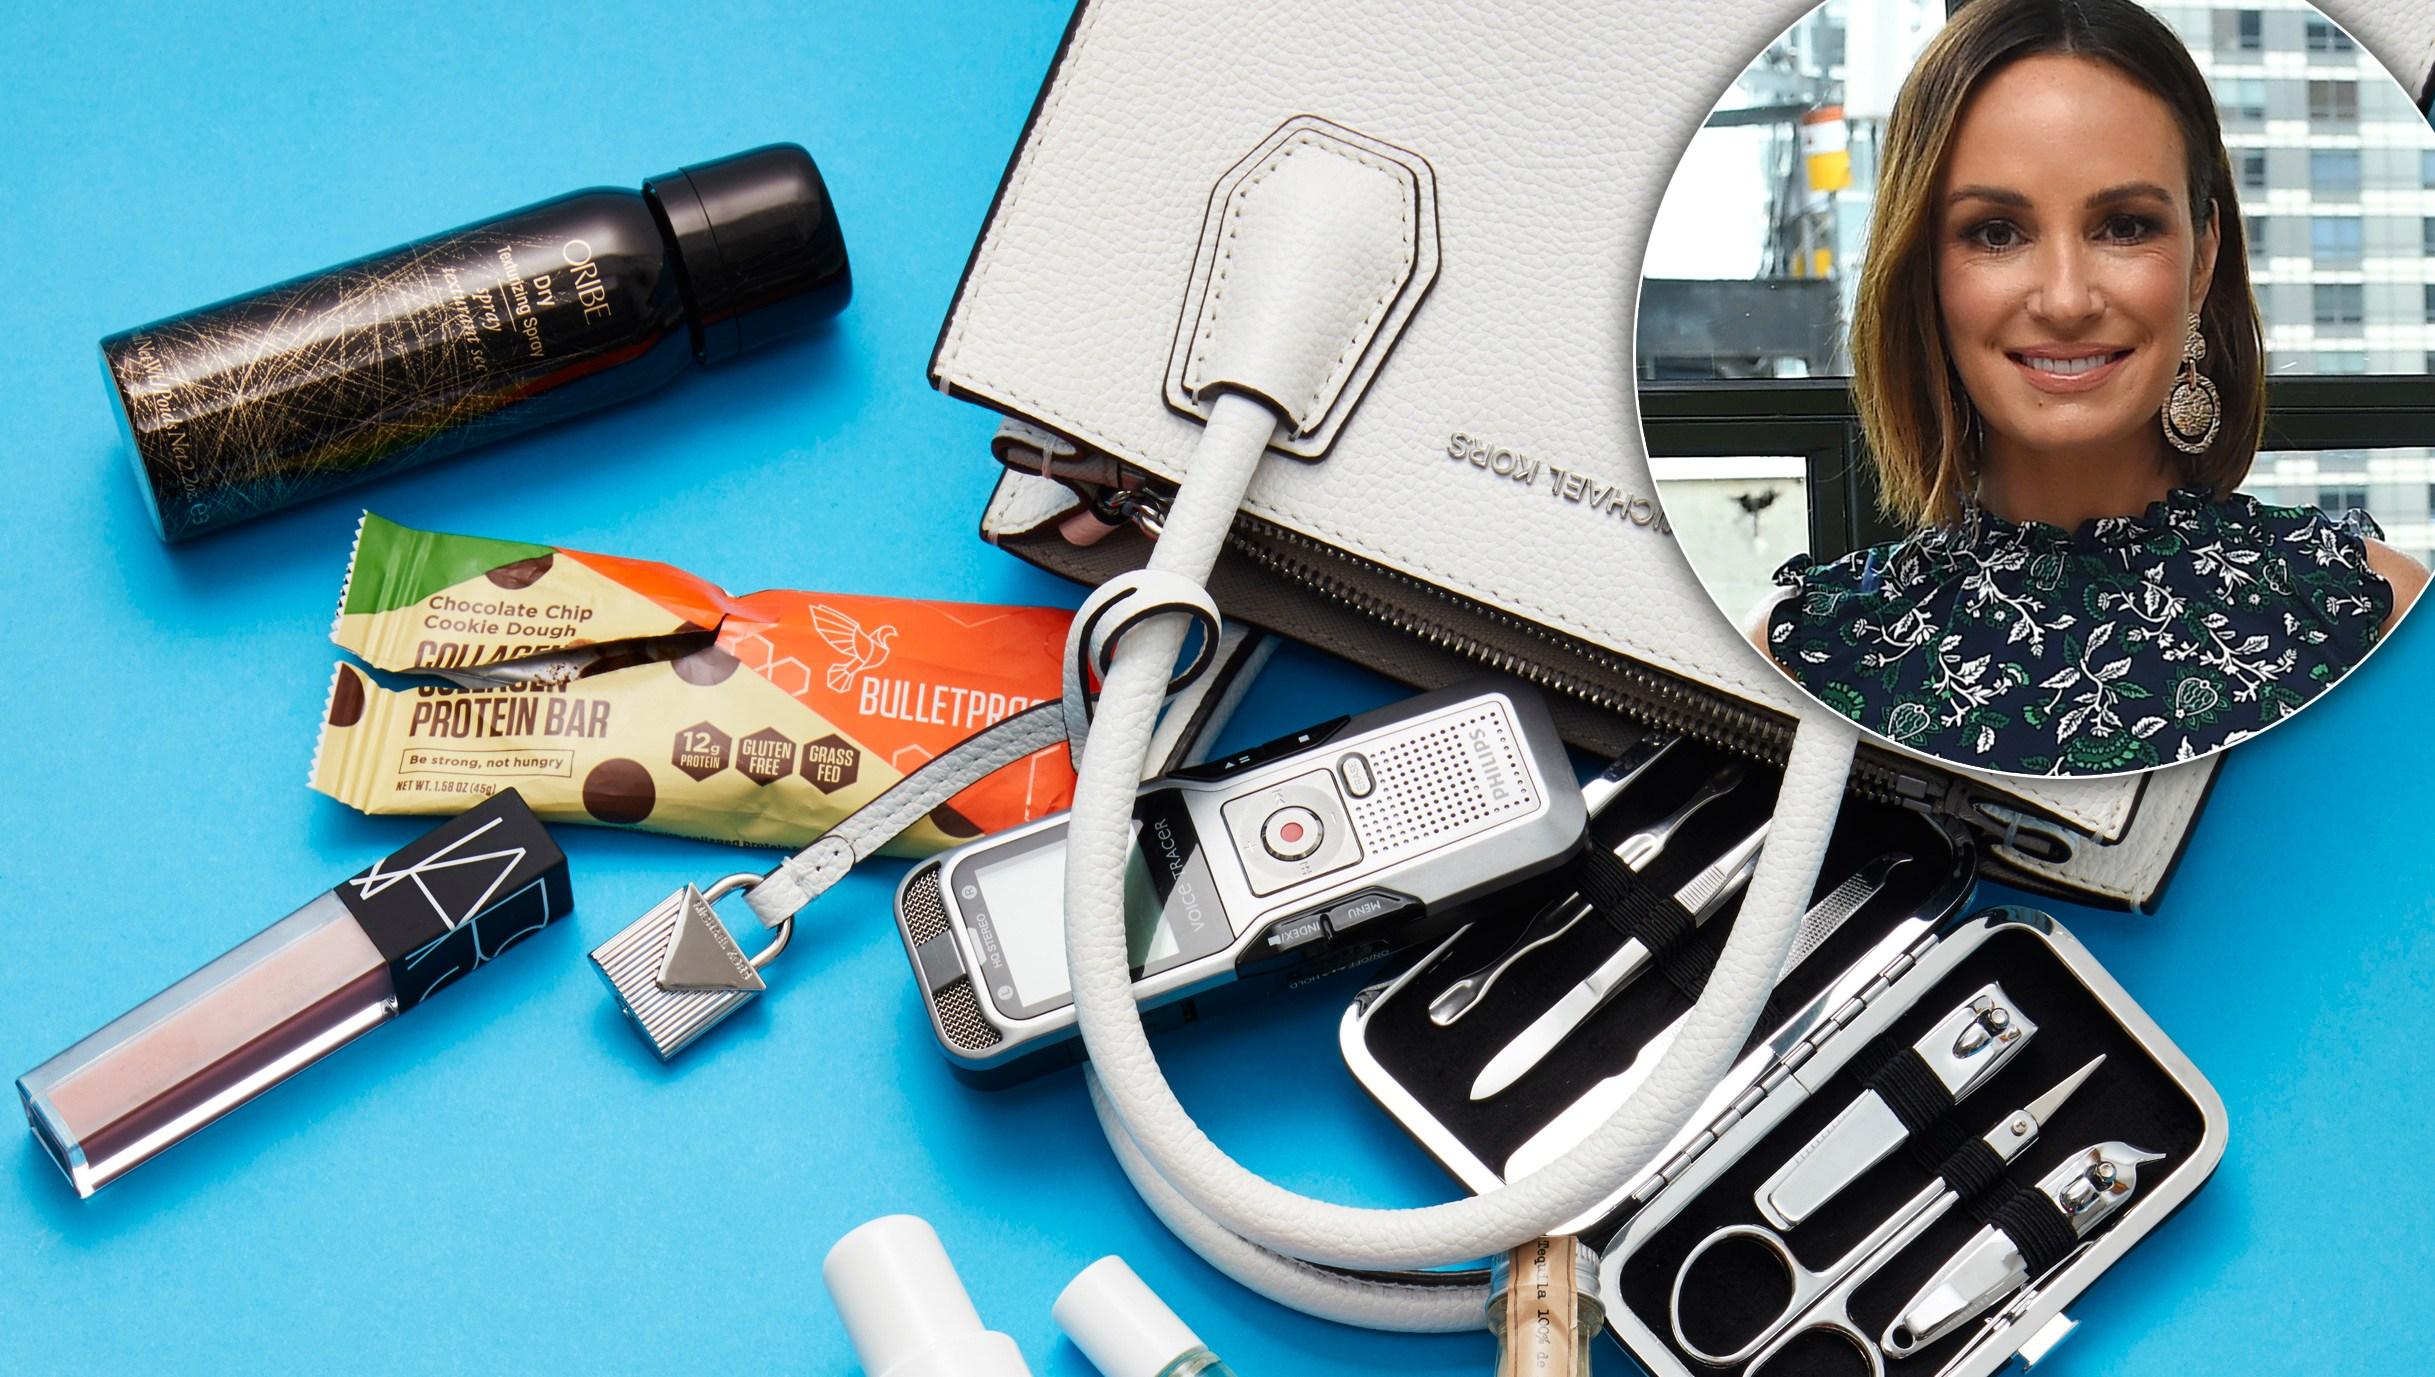 Catt Sadler: What's in My Bag?